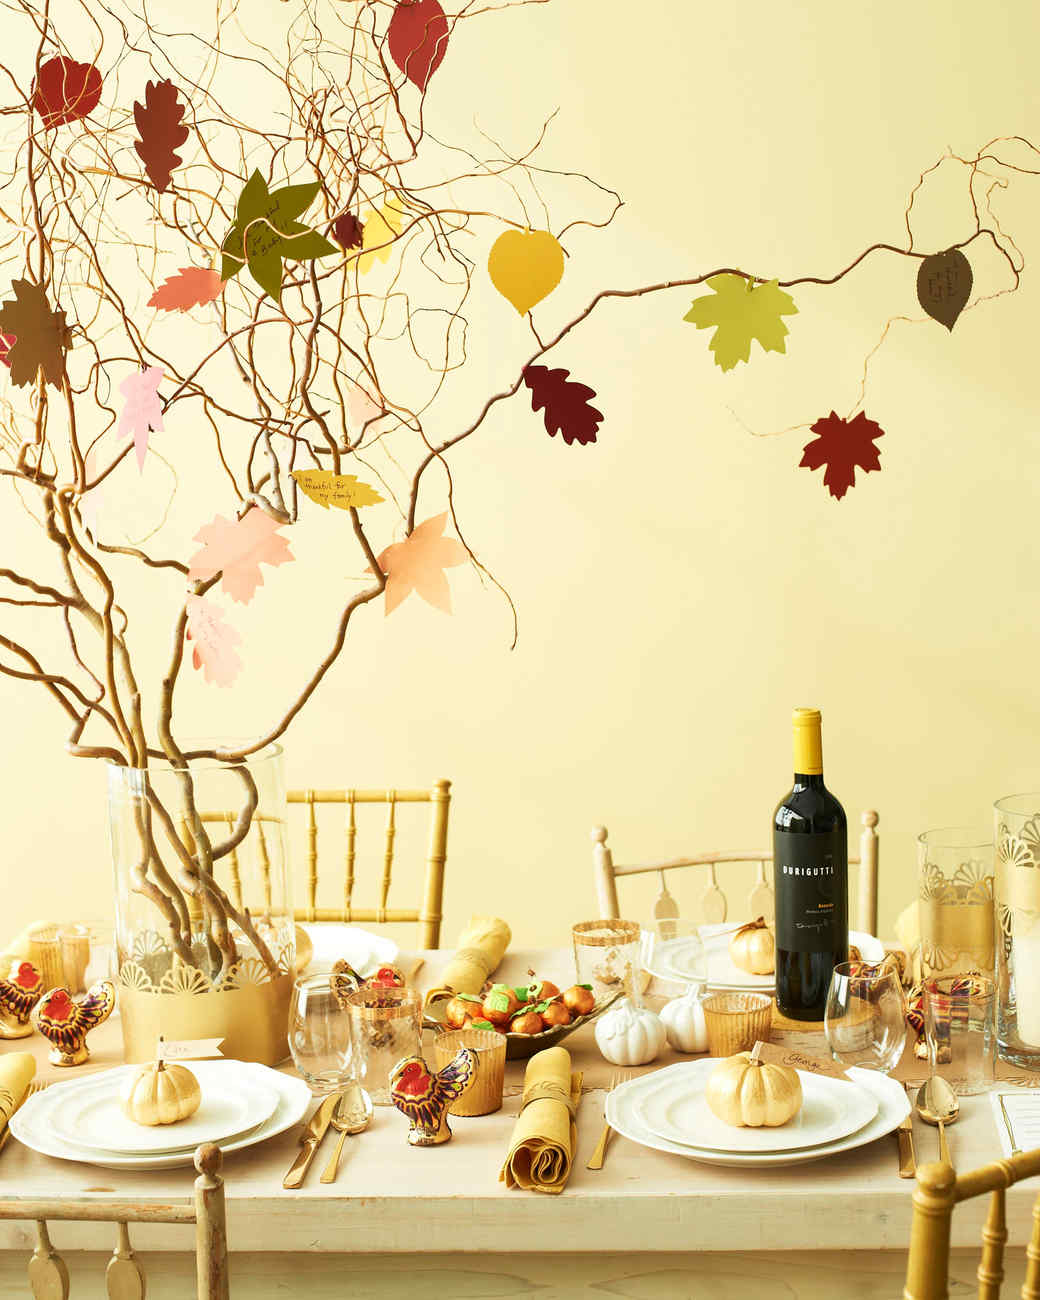 Tree Centerpieces: Time To Branch Out With Your Table